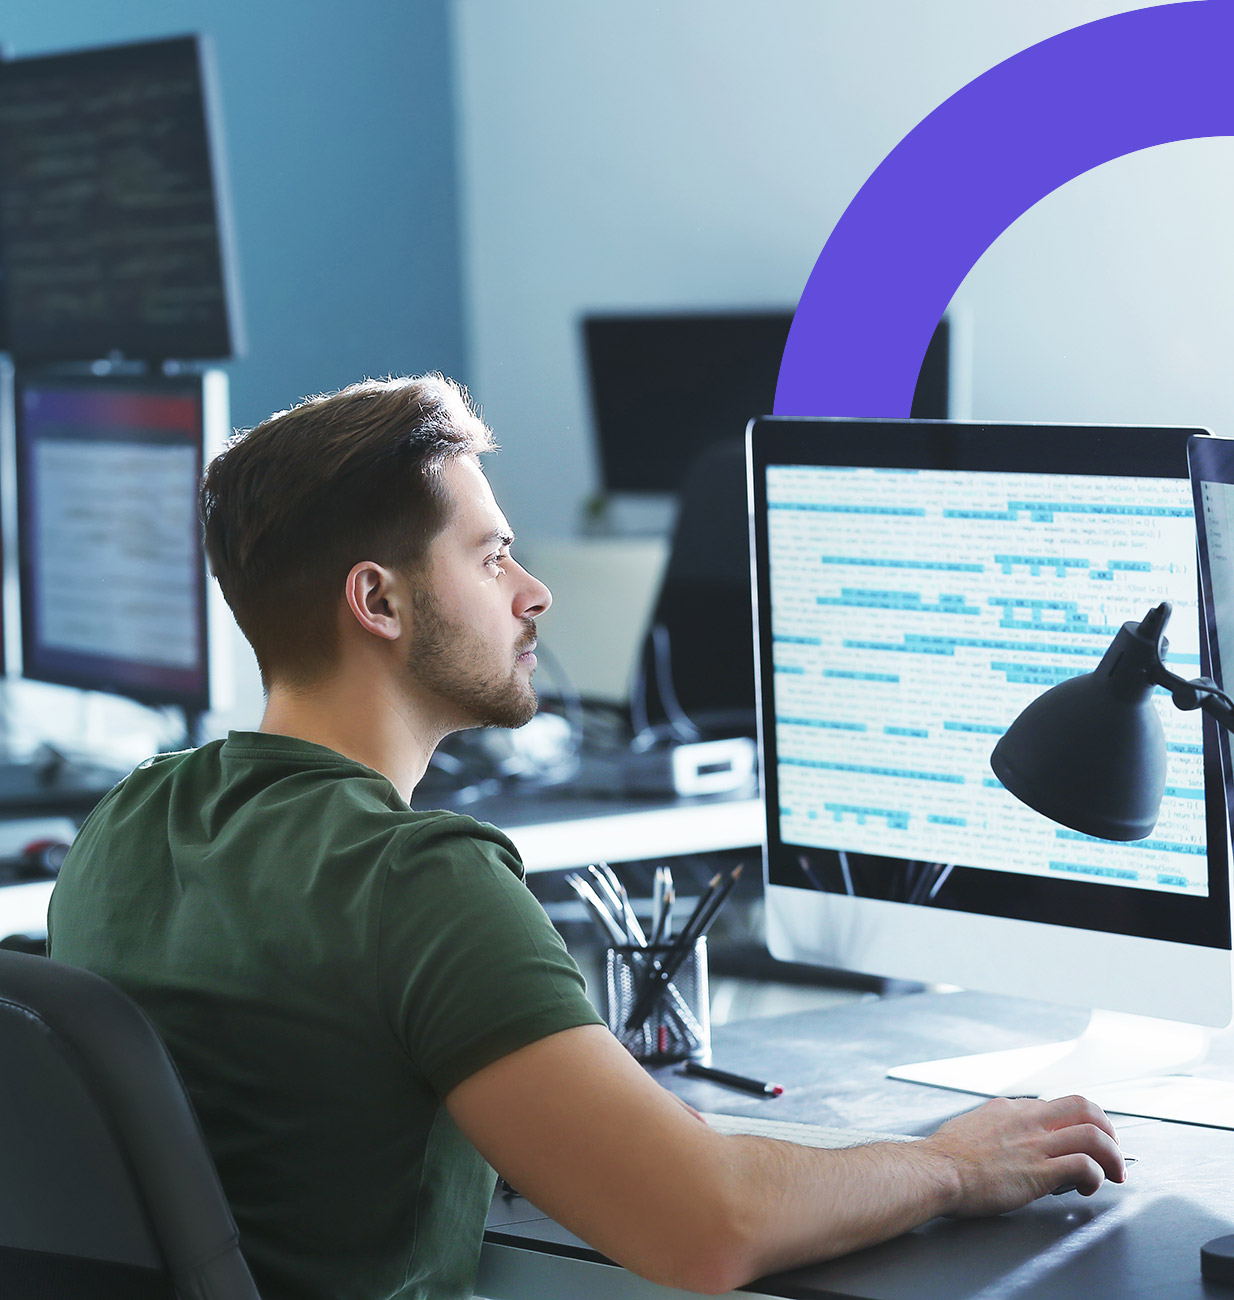 Developer working on code in front of a monitor.